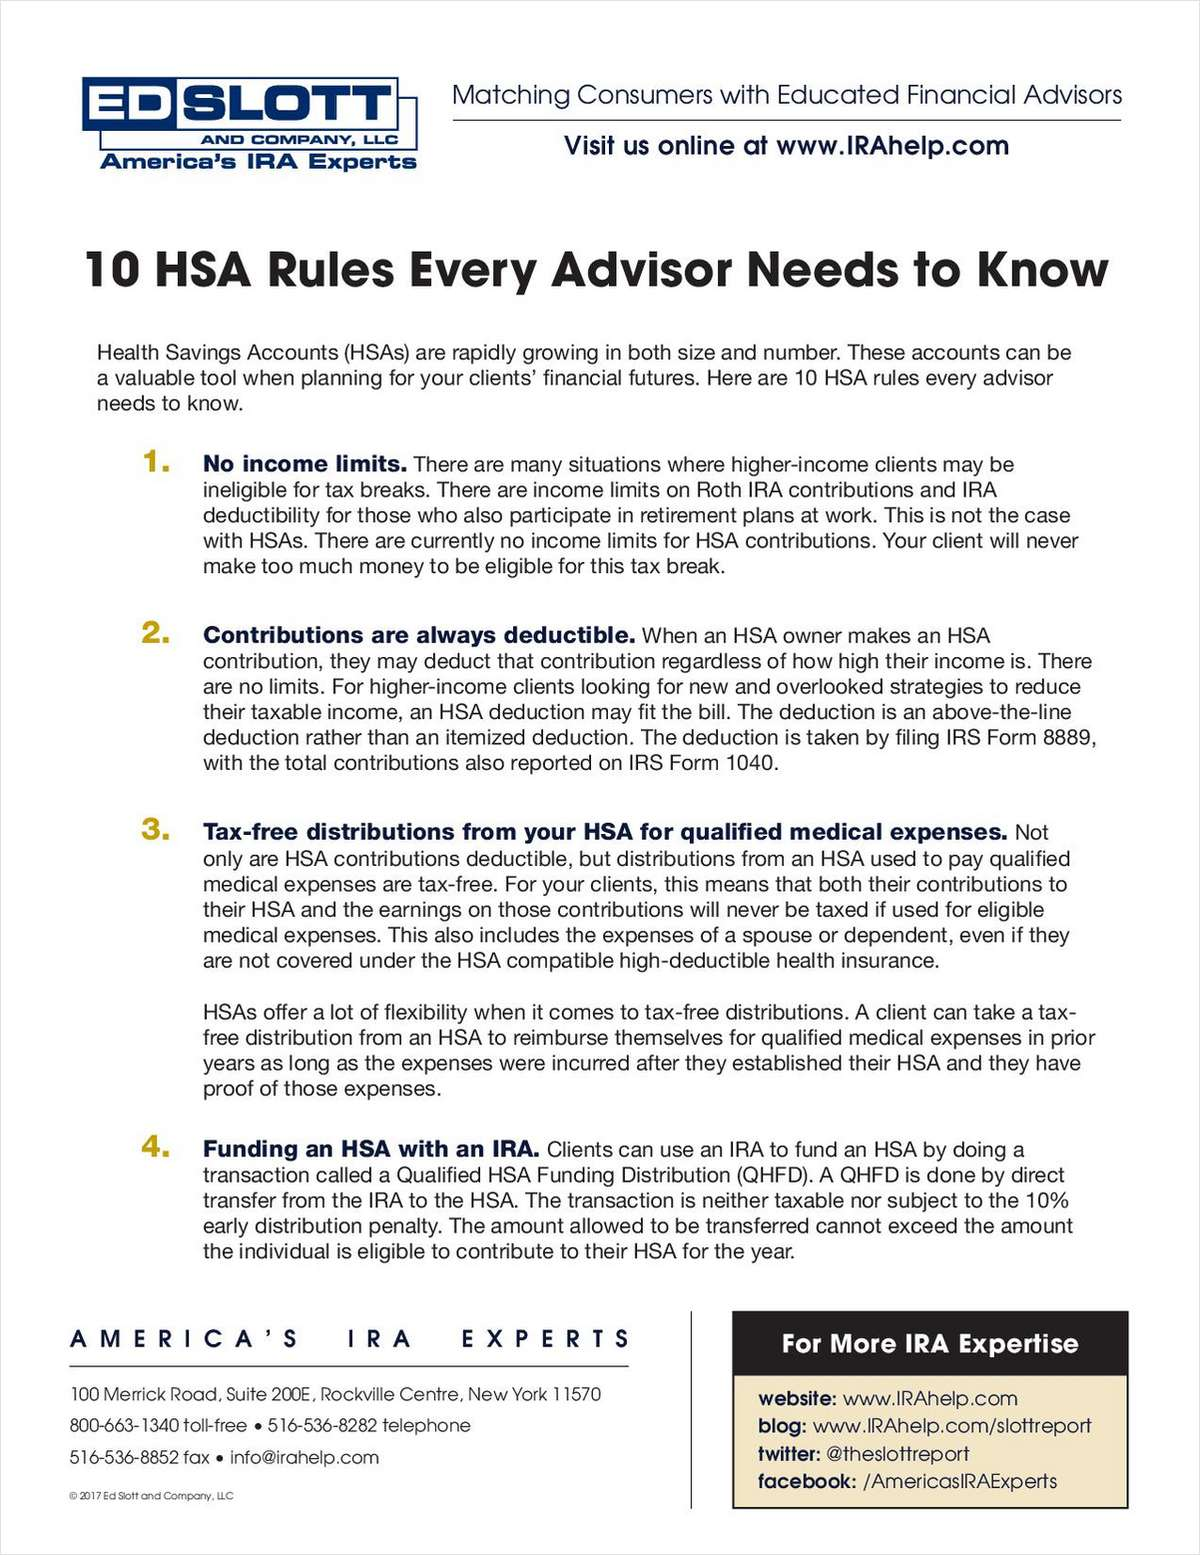 10 HSA Rules Every Advisor Needs to Know